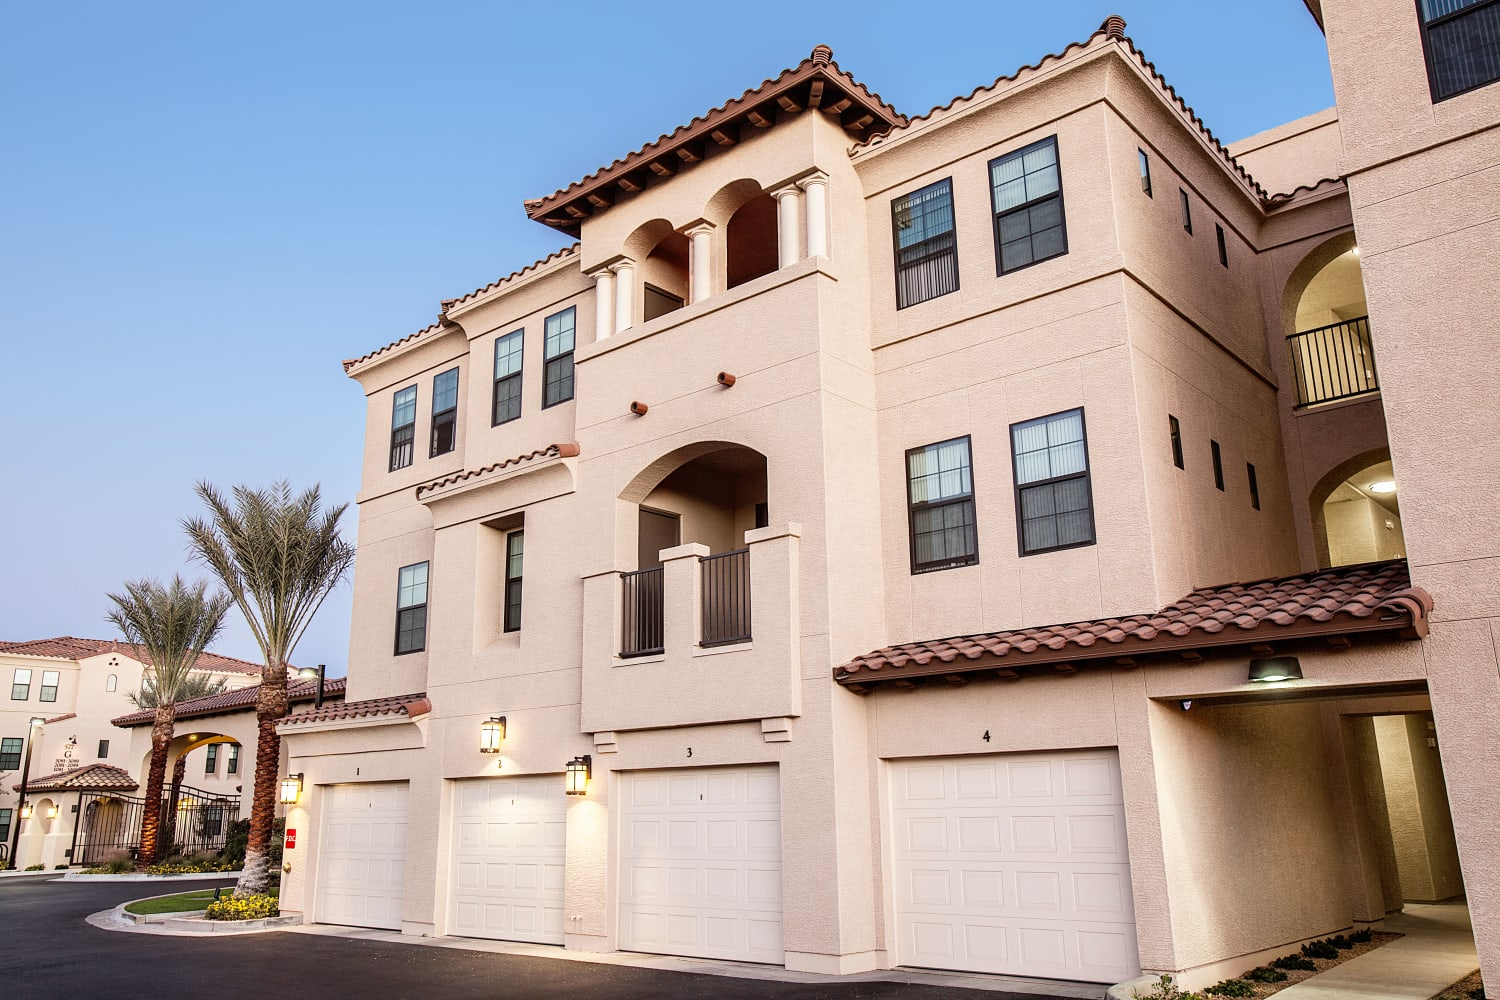 Private garages are available at San Marquis in Tempe, Arizona